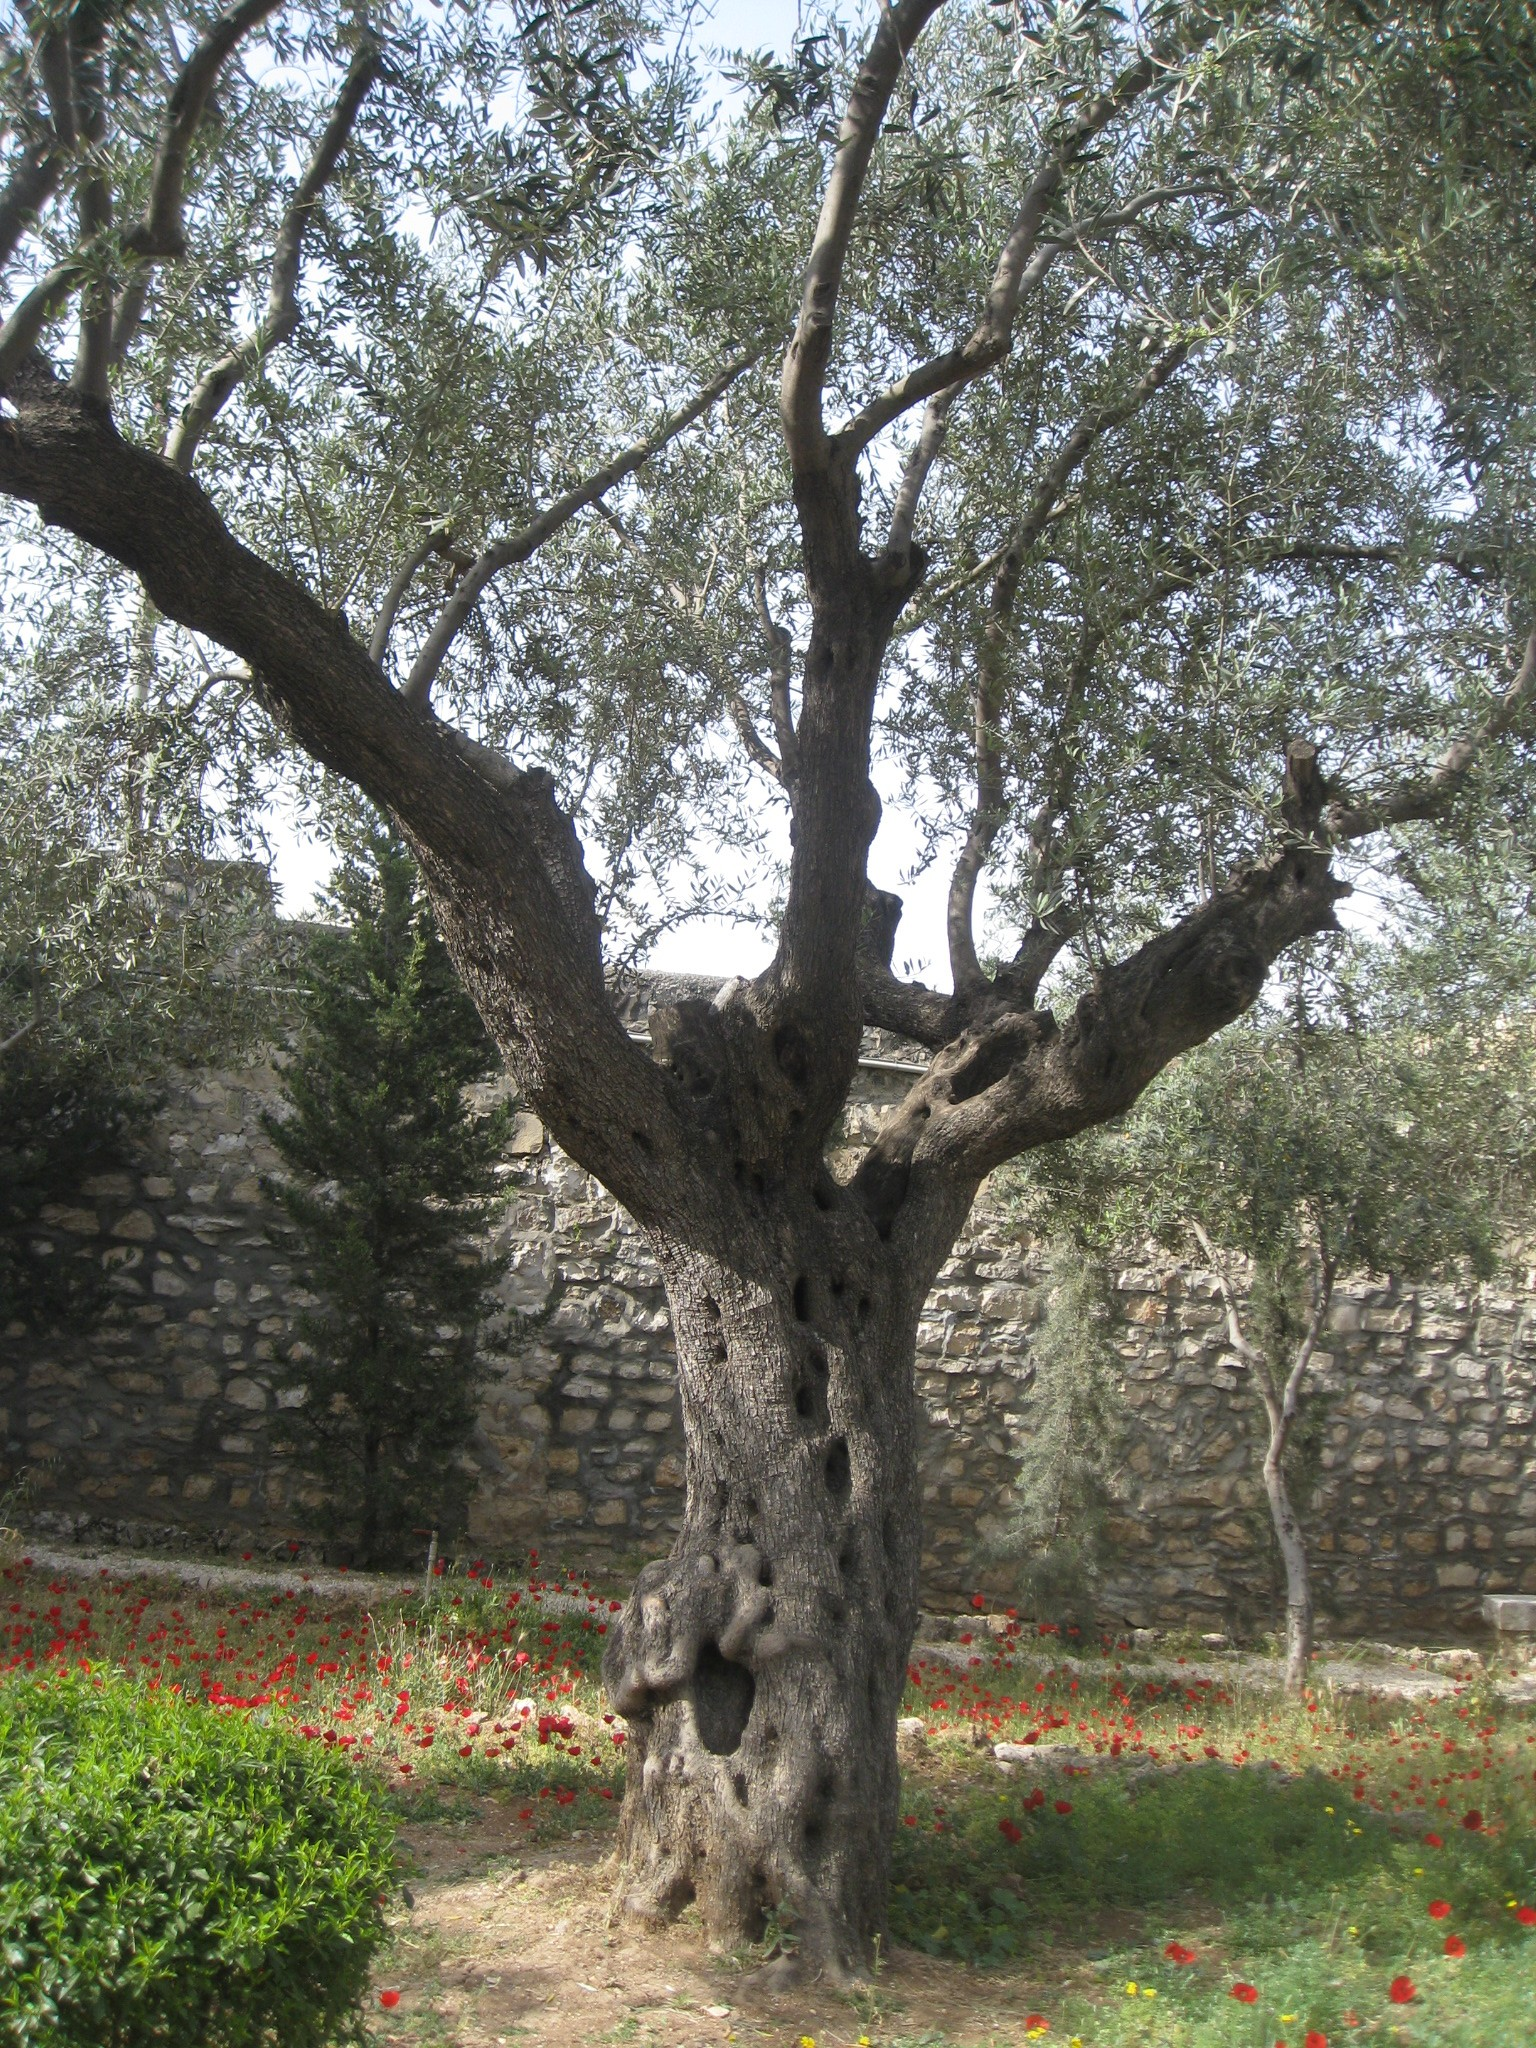 Garden Of Gethsemane Olive Tree 2